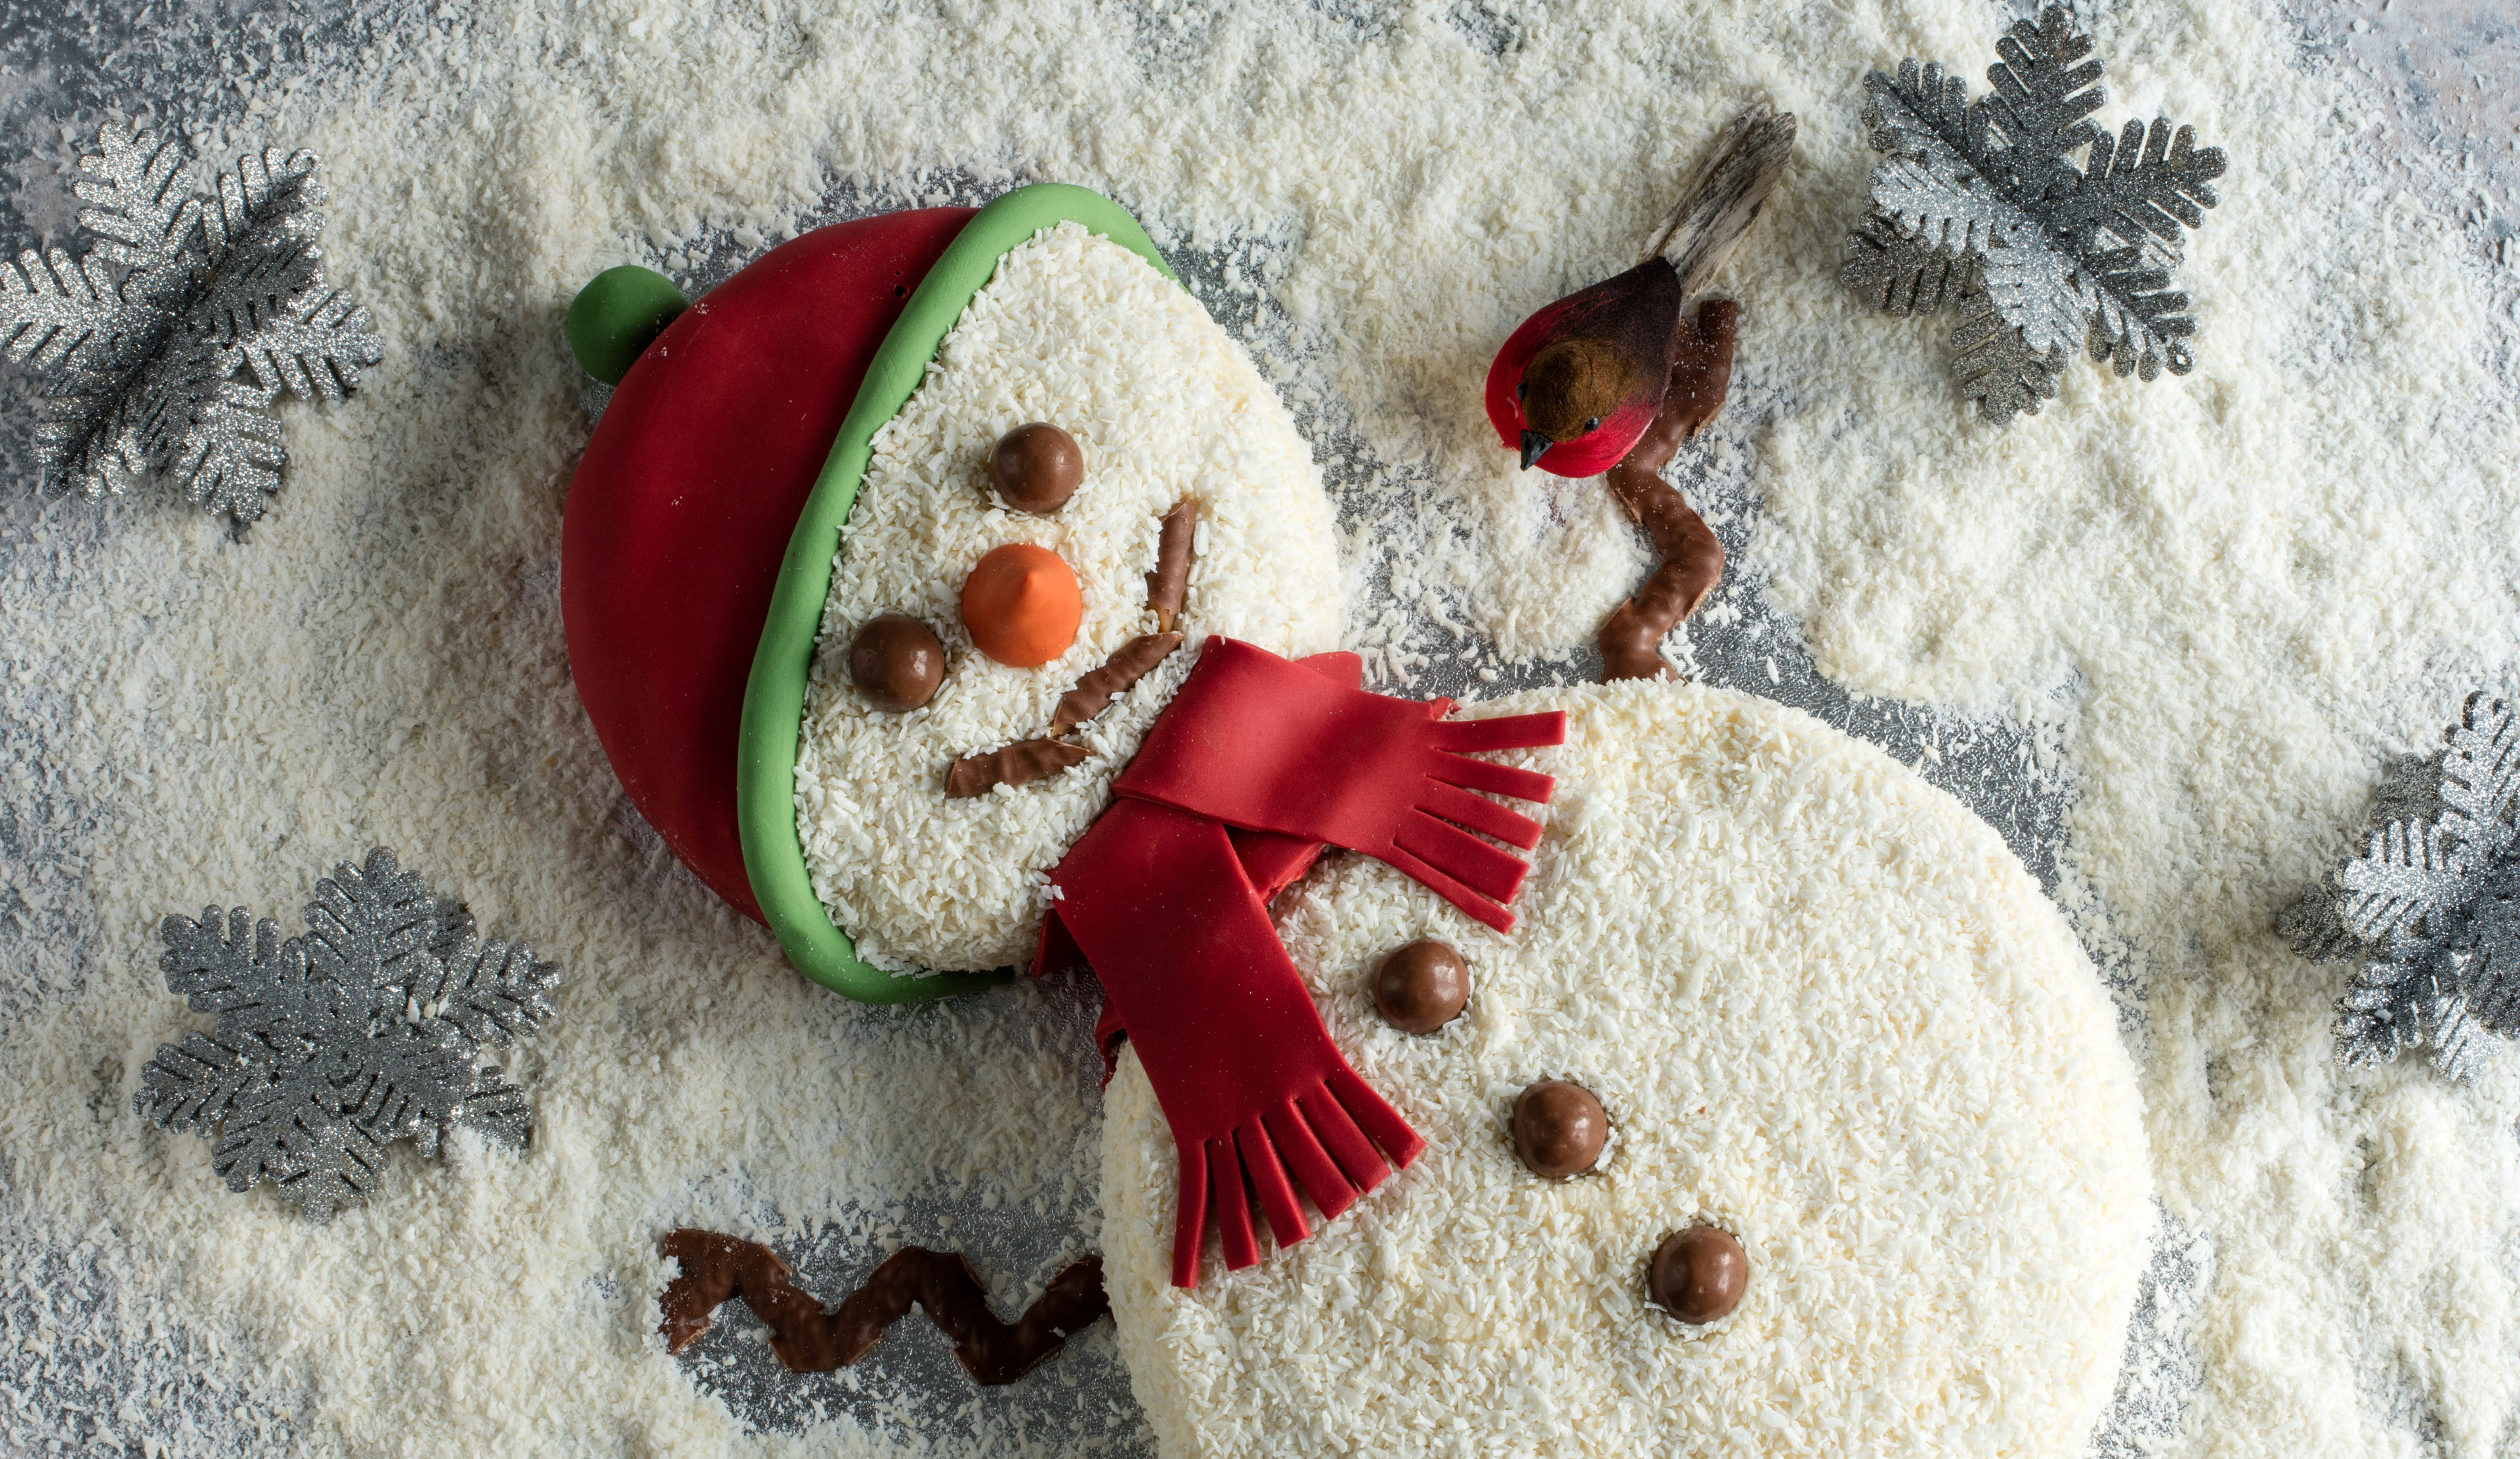 Snowman-Celebration-Cake_HIGH-RES_1.jpg